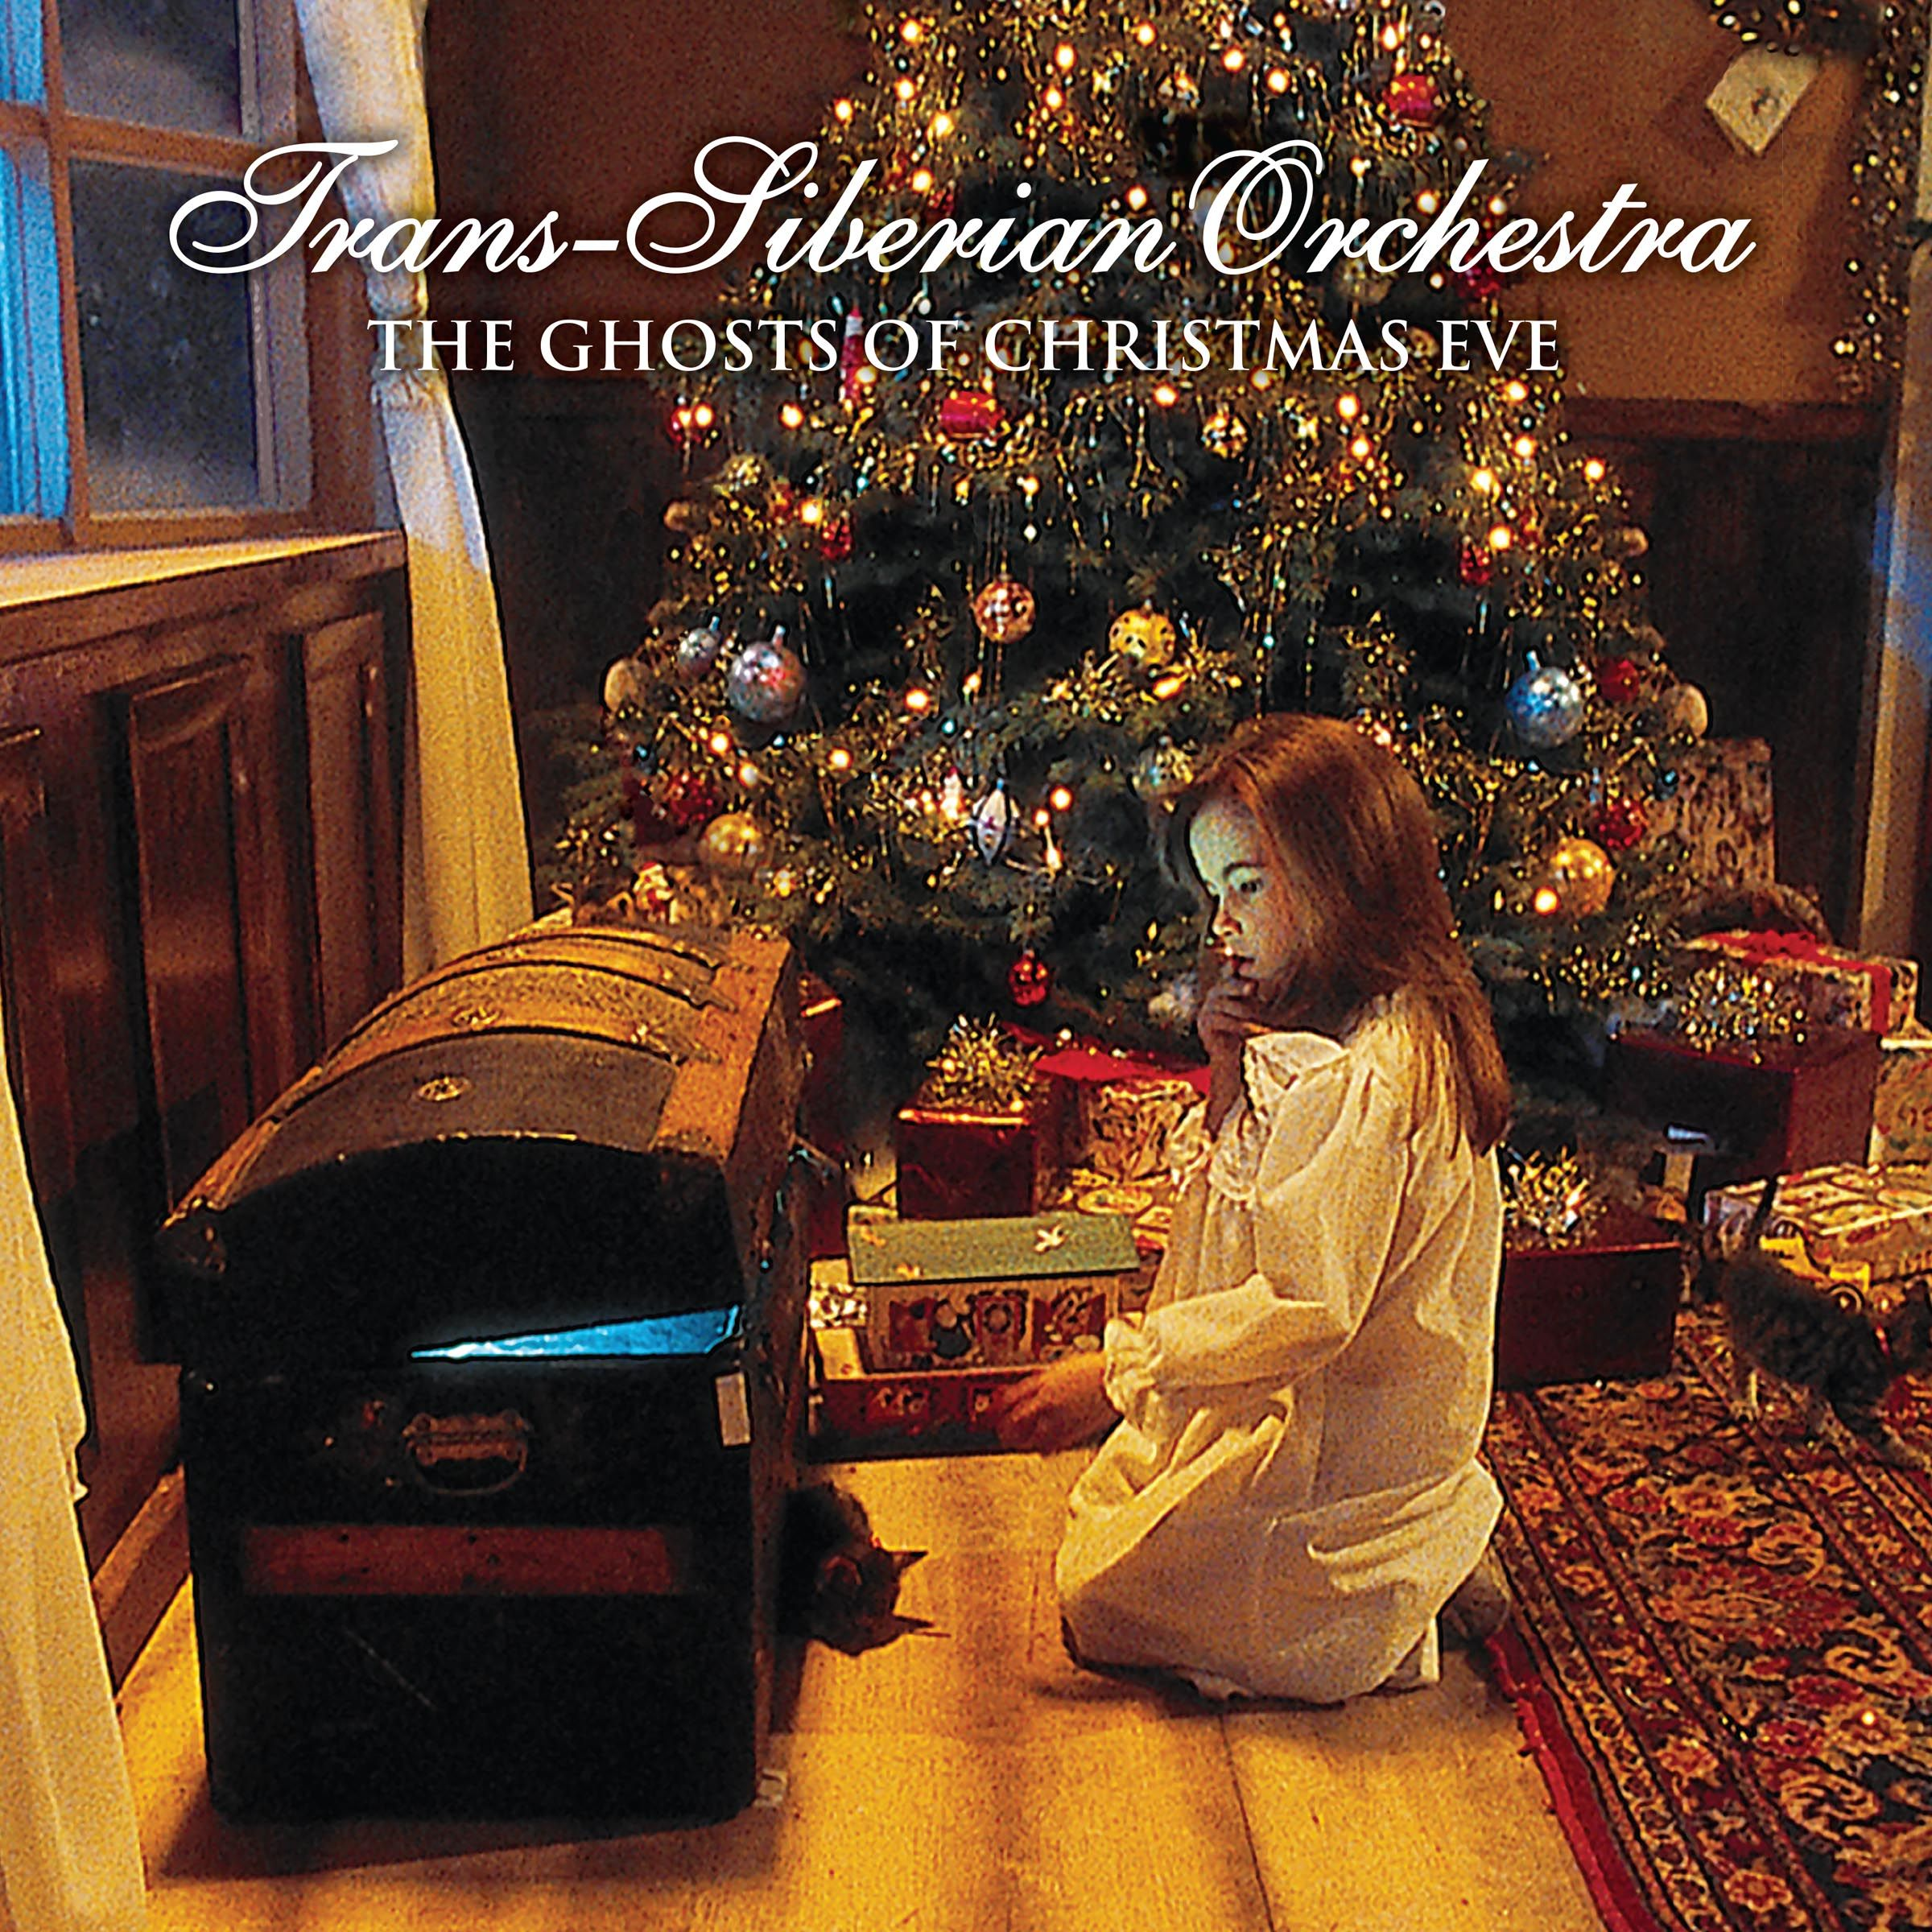 Trans Siberian Orchestra Radio Listen To Free Music Get The Latest Info Iheartradio